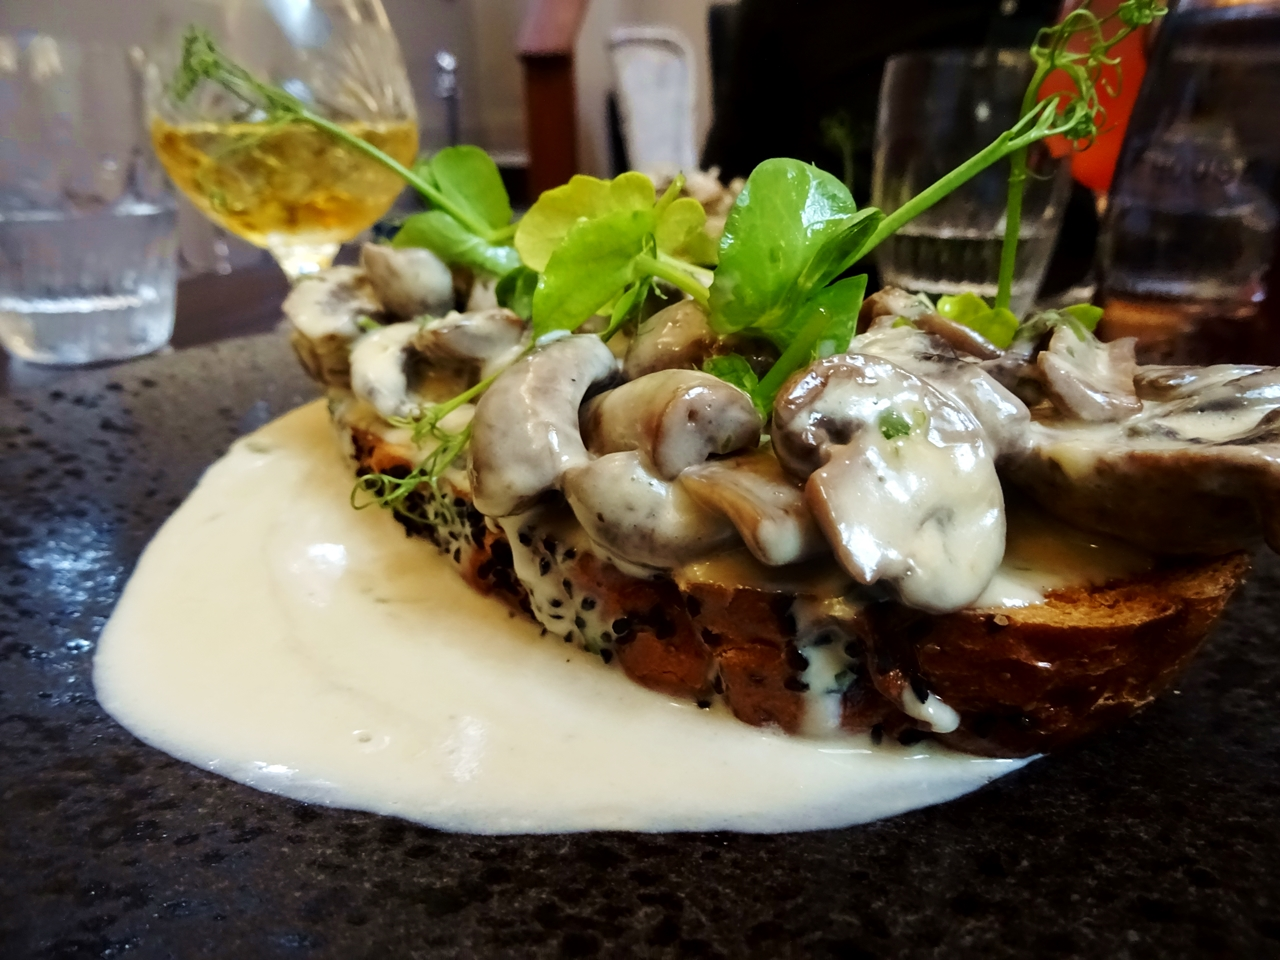 bloomer shrooms starter courthouse cheshire knutsford